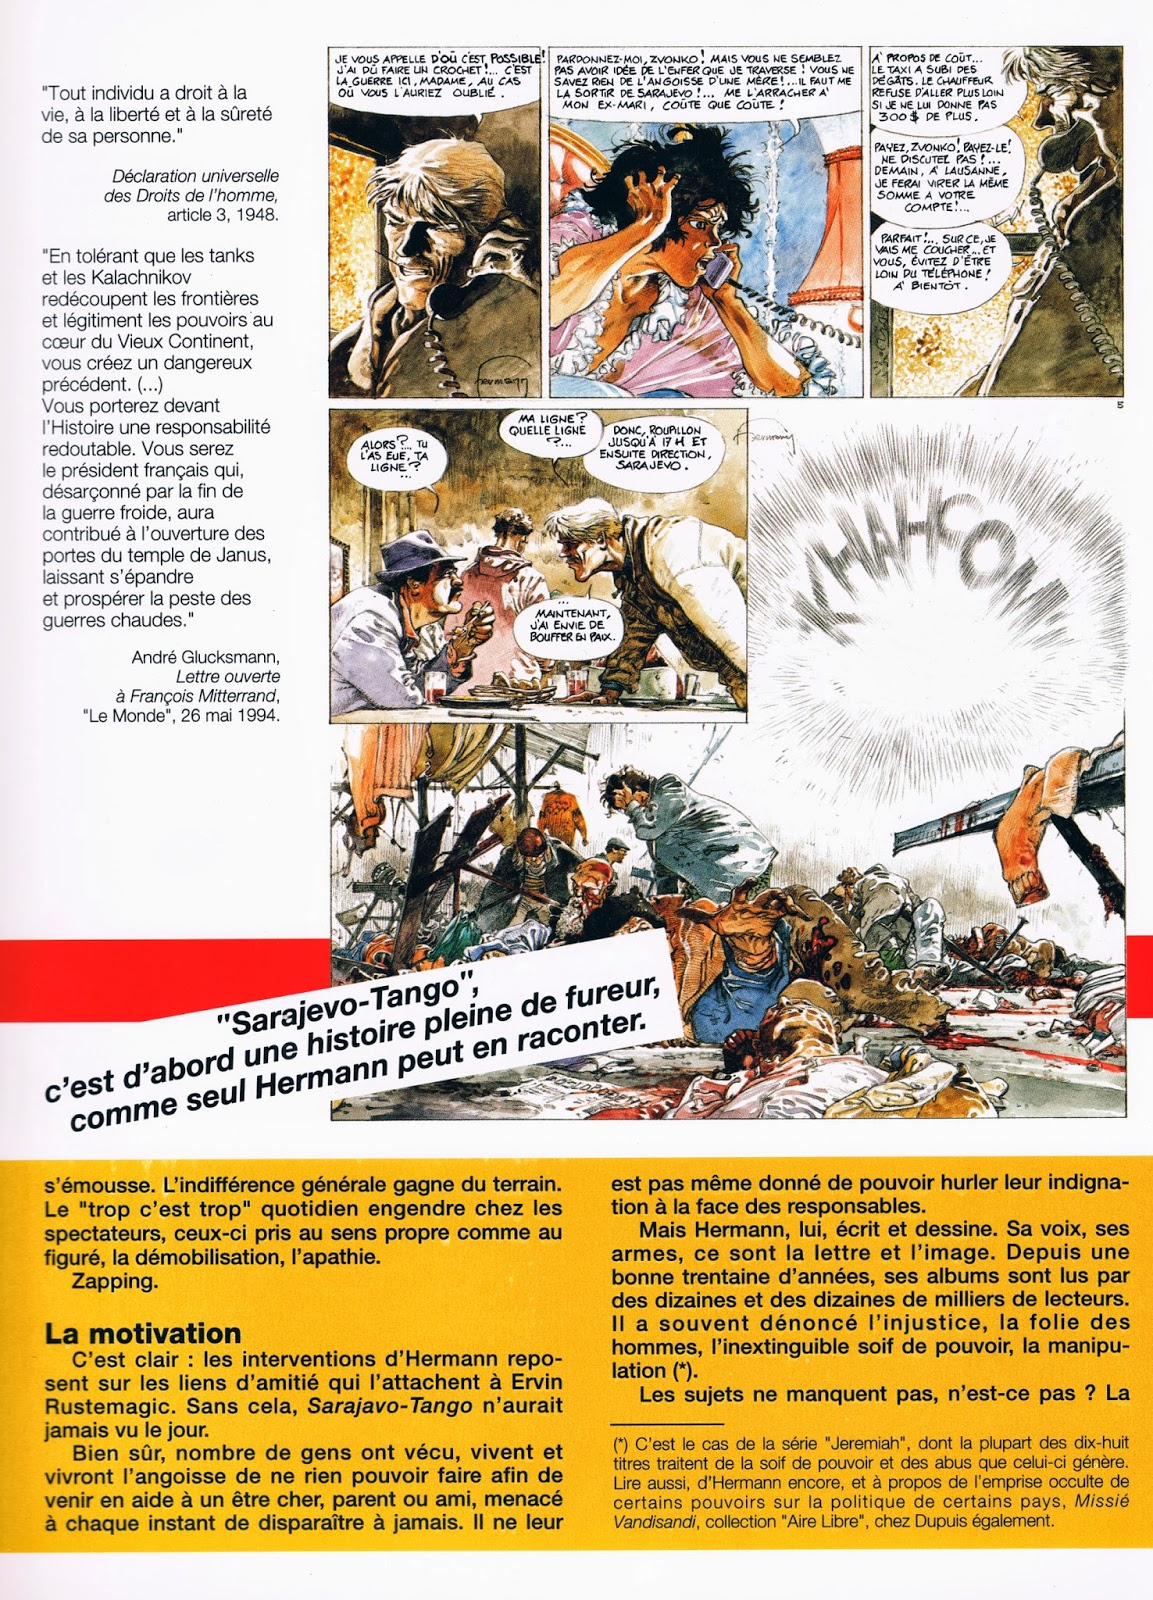 courant a lire absolument